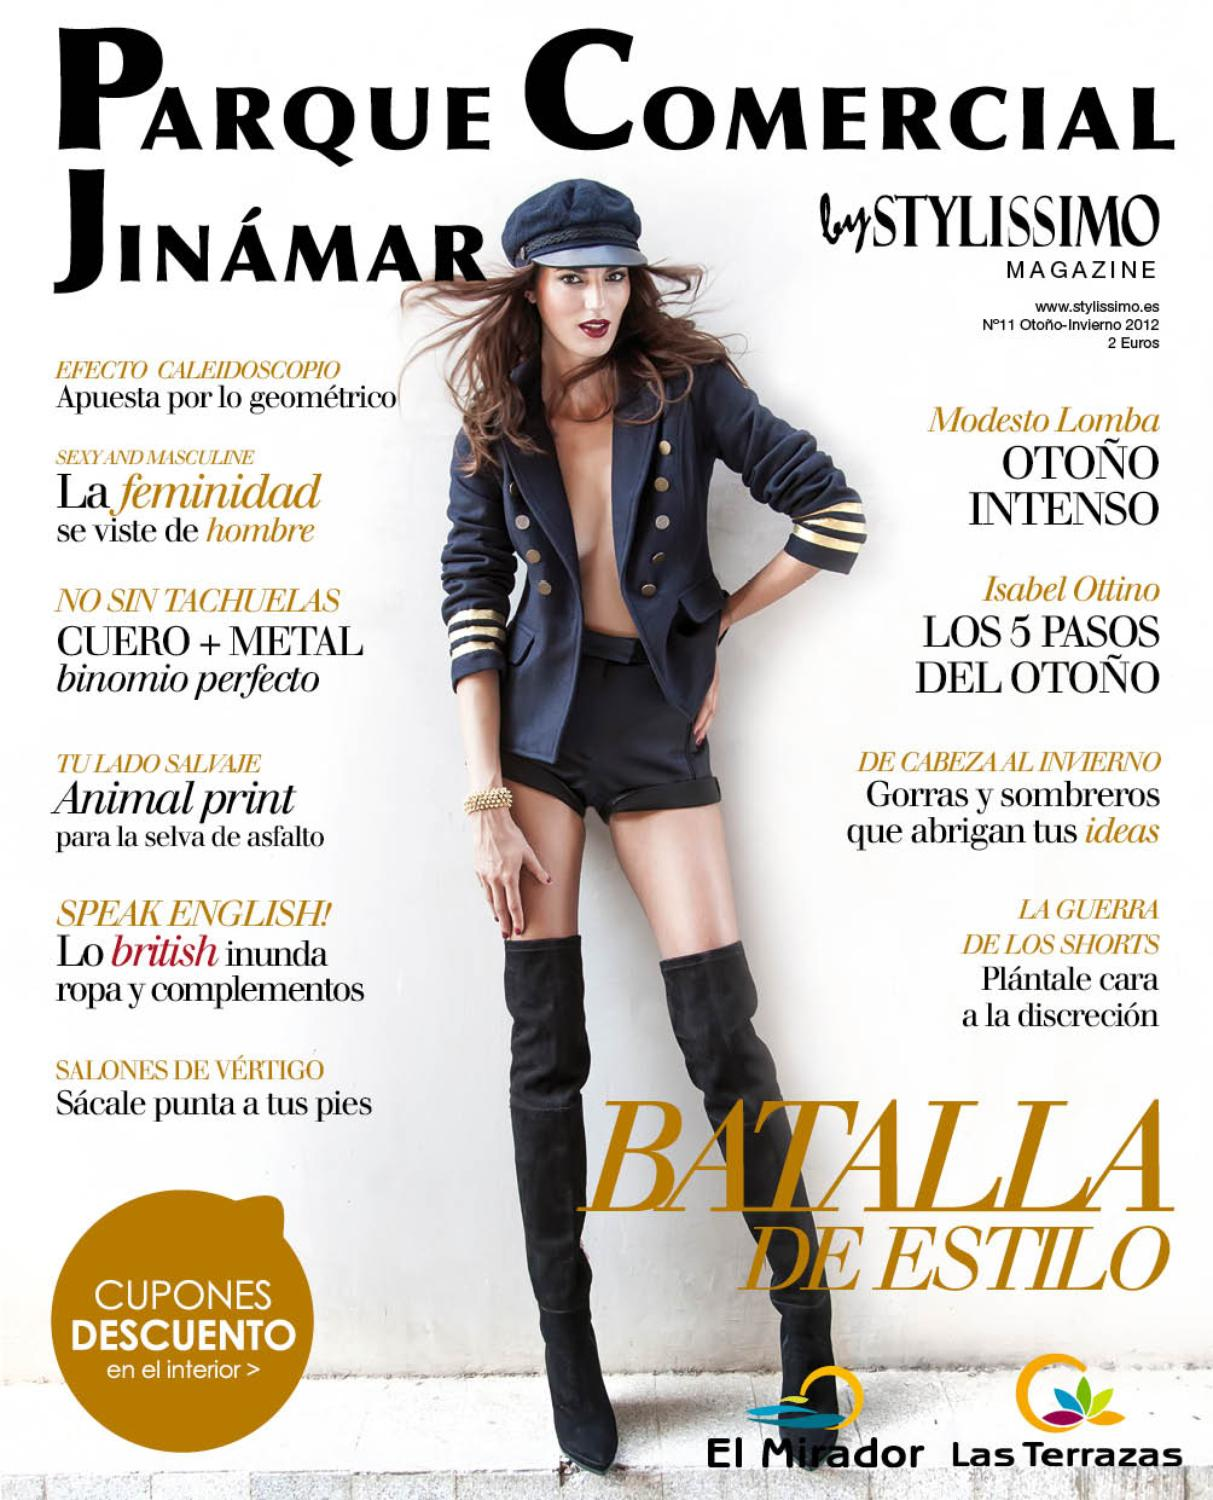 Sty11 Magazine By parque comercial Issuu Stylissimo jinamar 1J3TFlKc